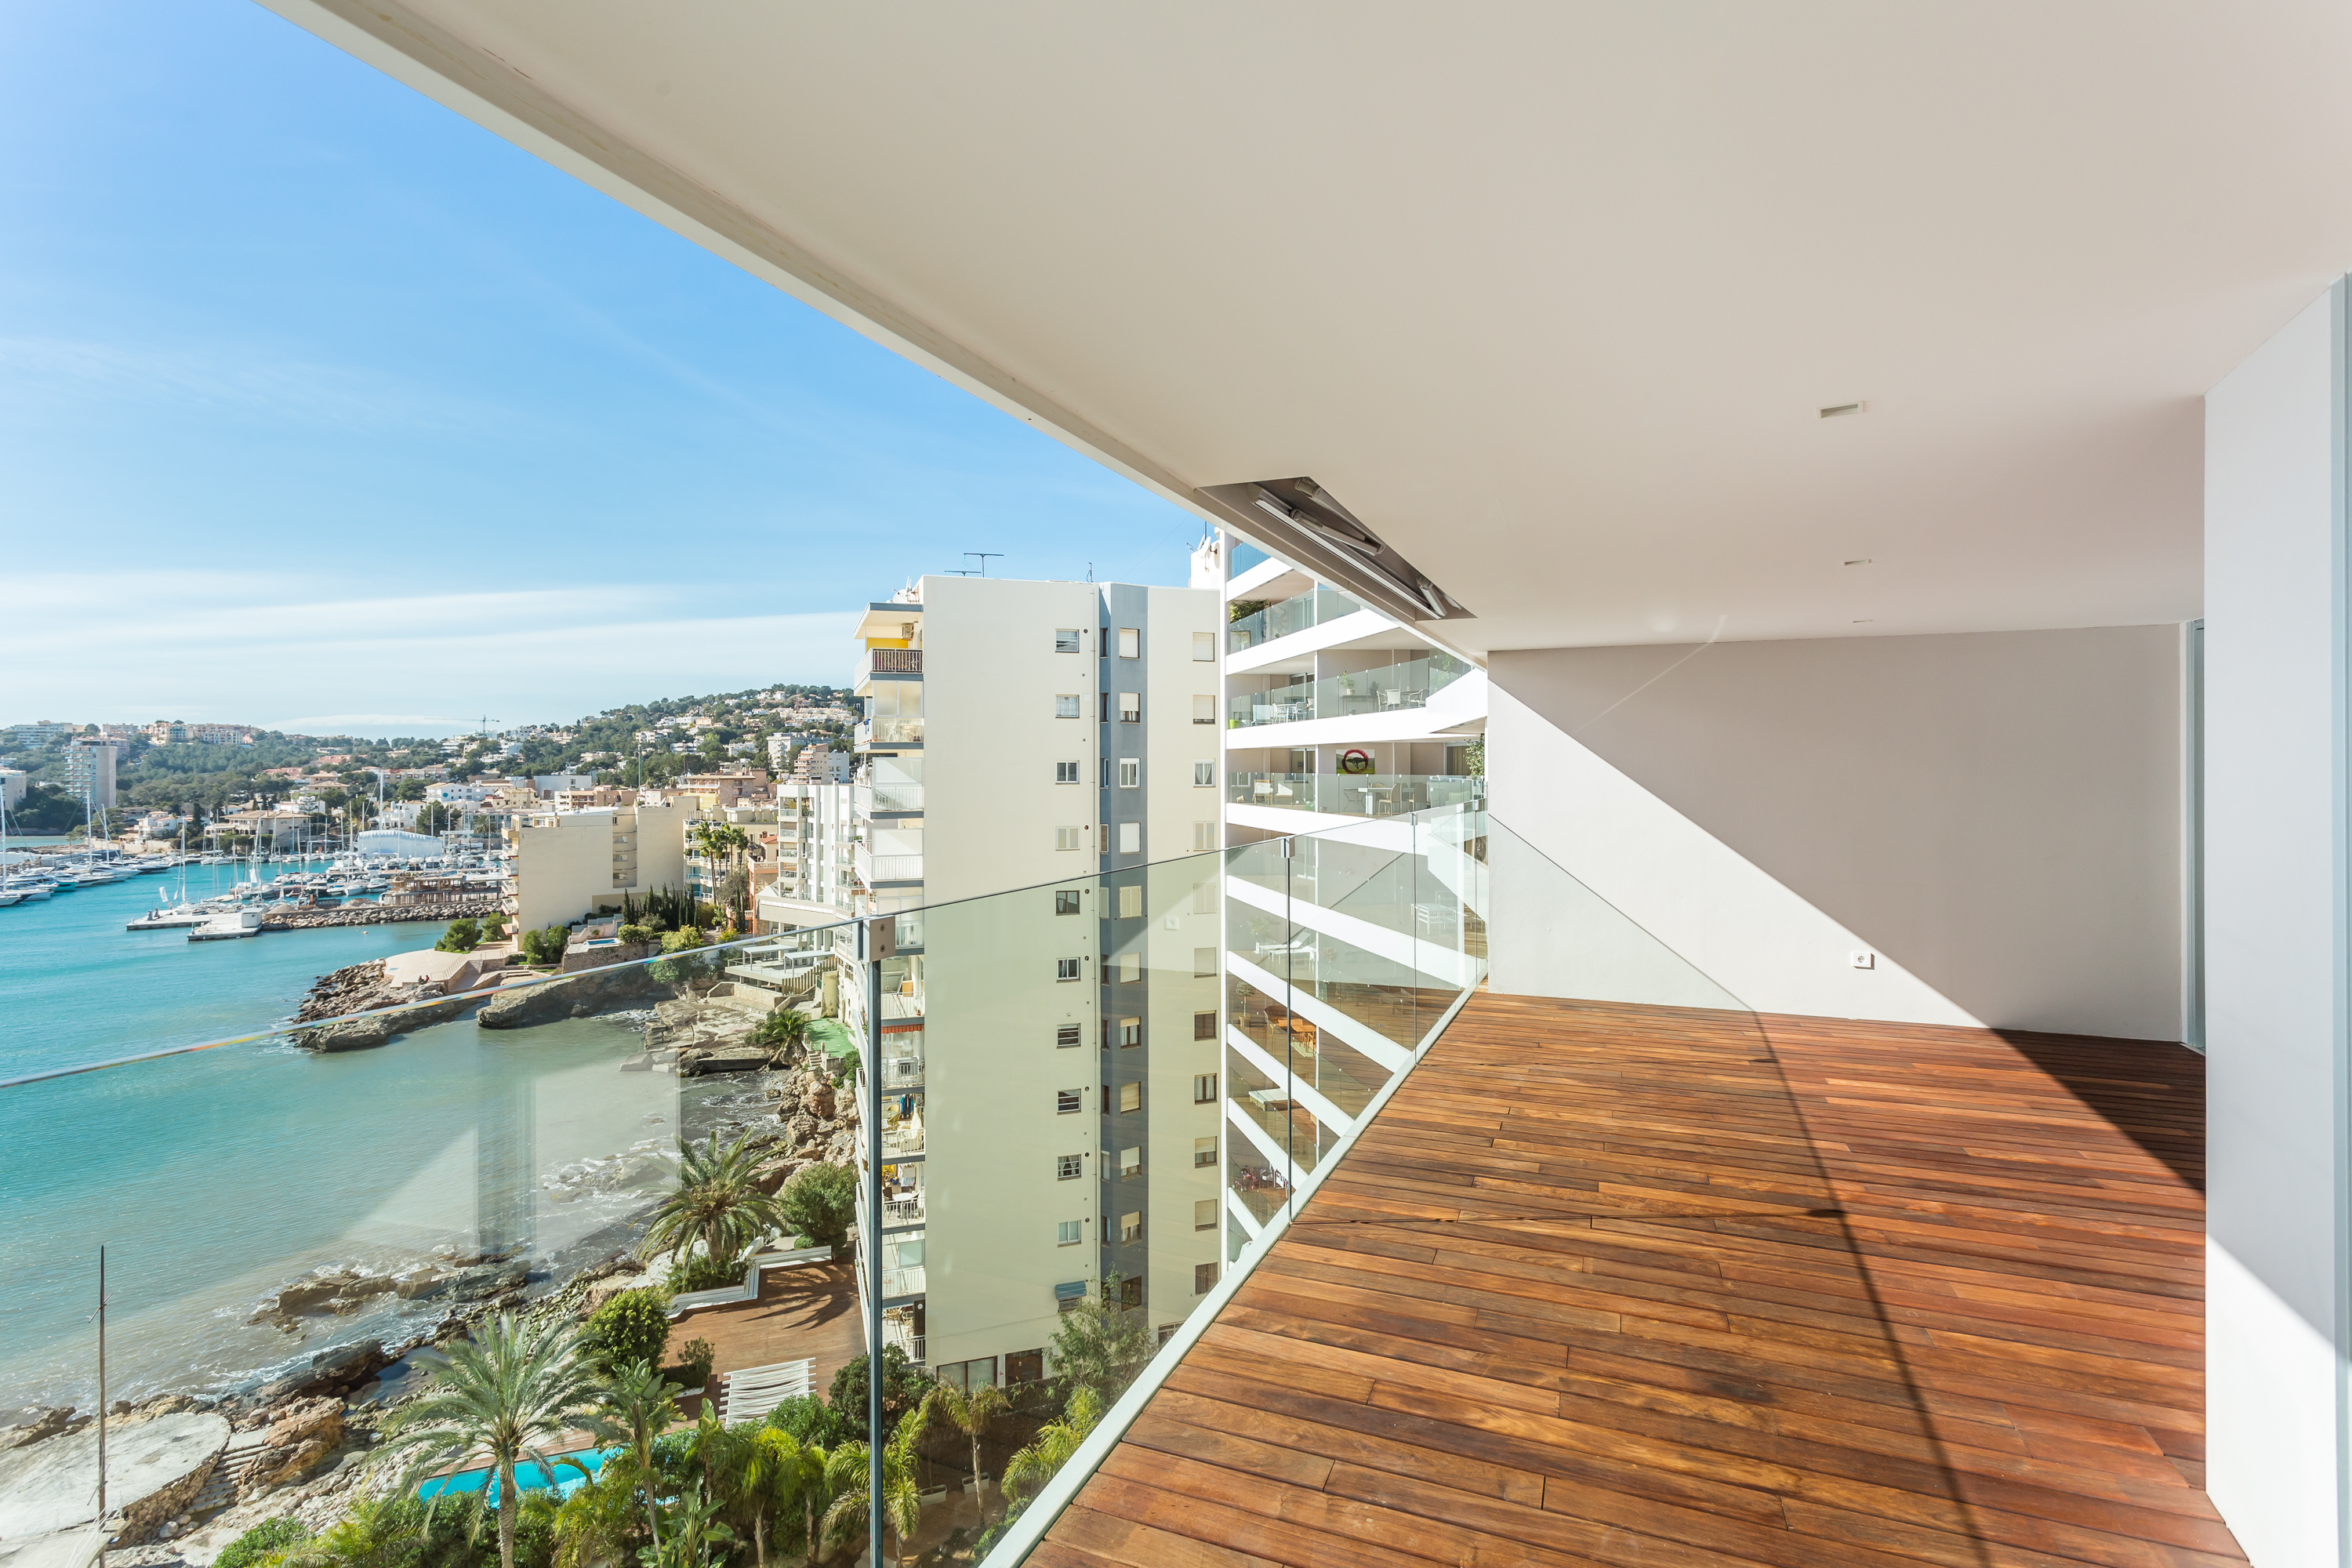 Casa Unifamiliar por un Venta en Luxury sea front apartment with views, San Agustín Palma, Mallorca, 07015 España